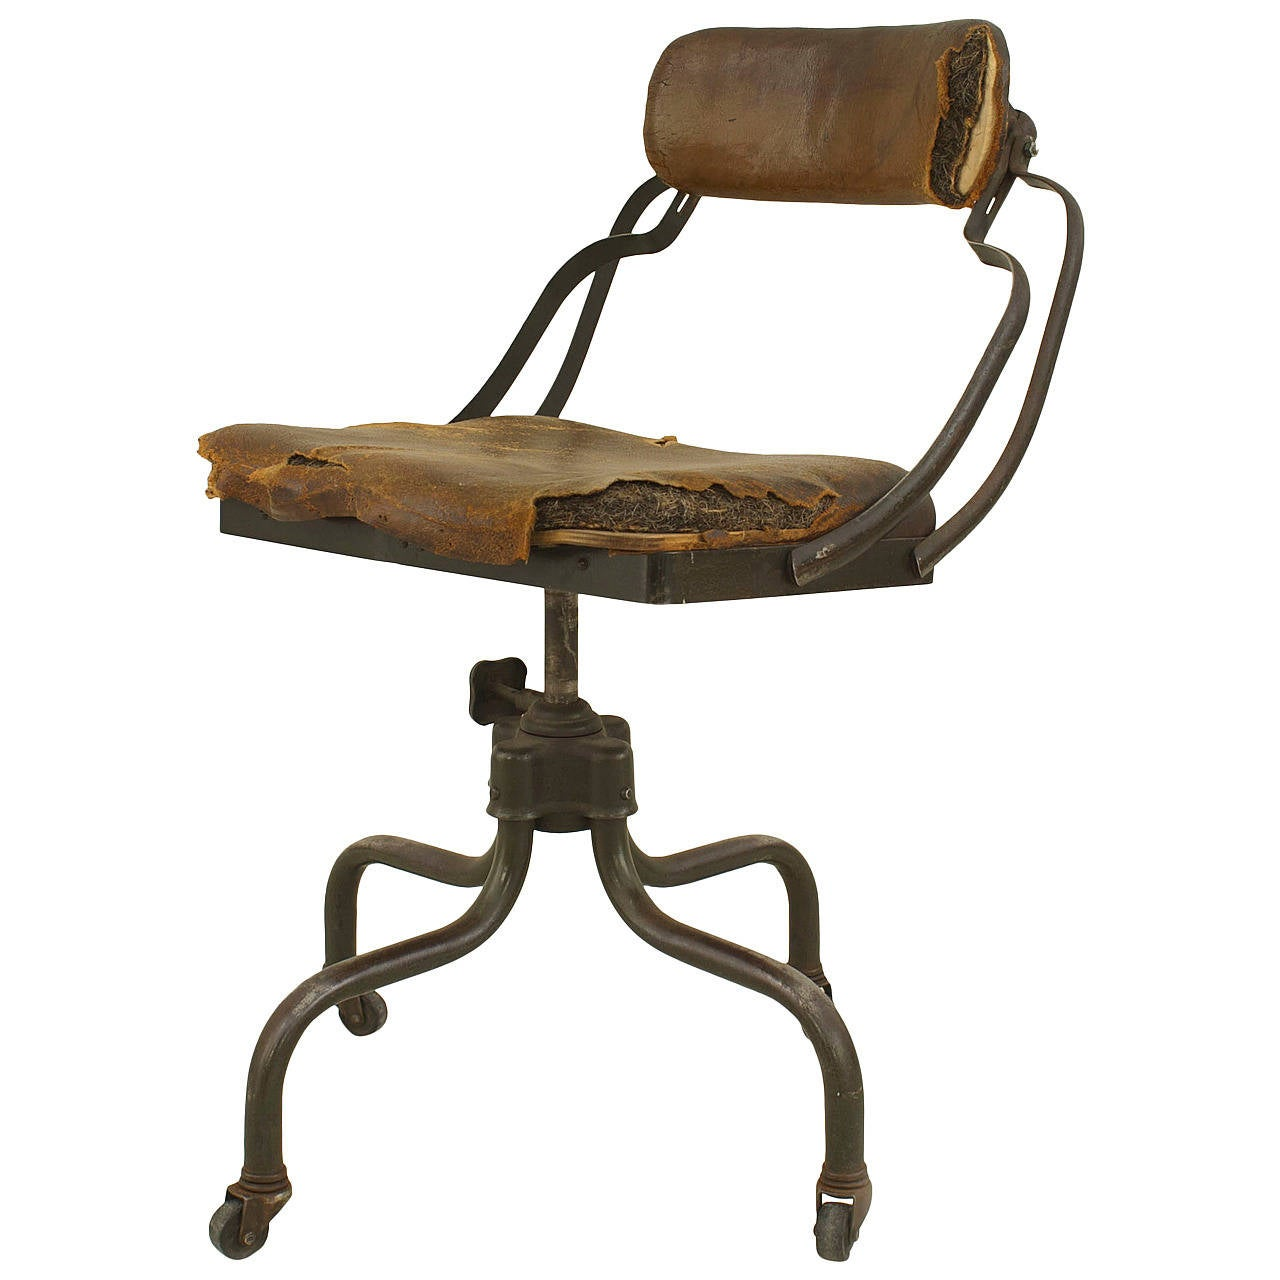 Early 20th Century American Metal And Leather Office Chair For Sale At 1stdibs